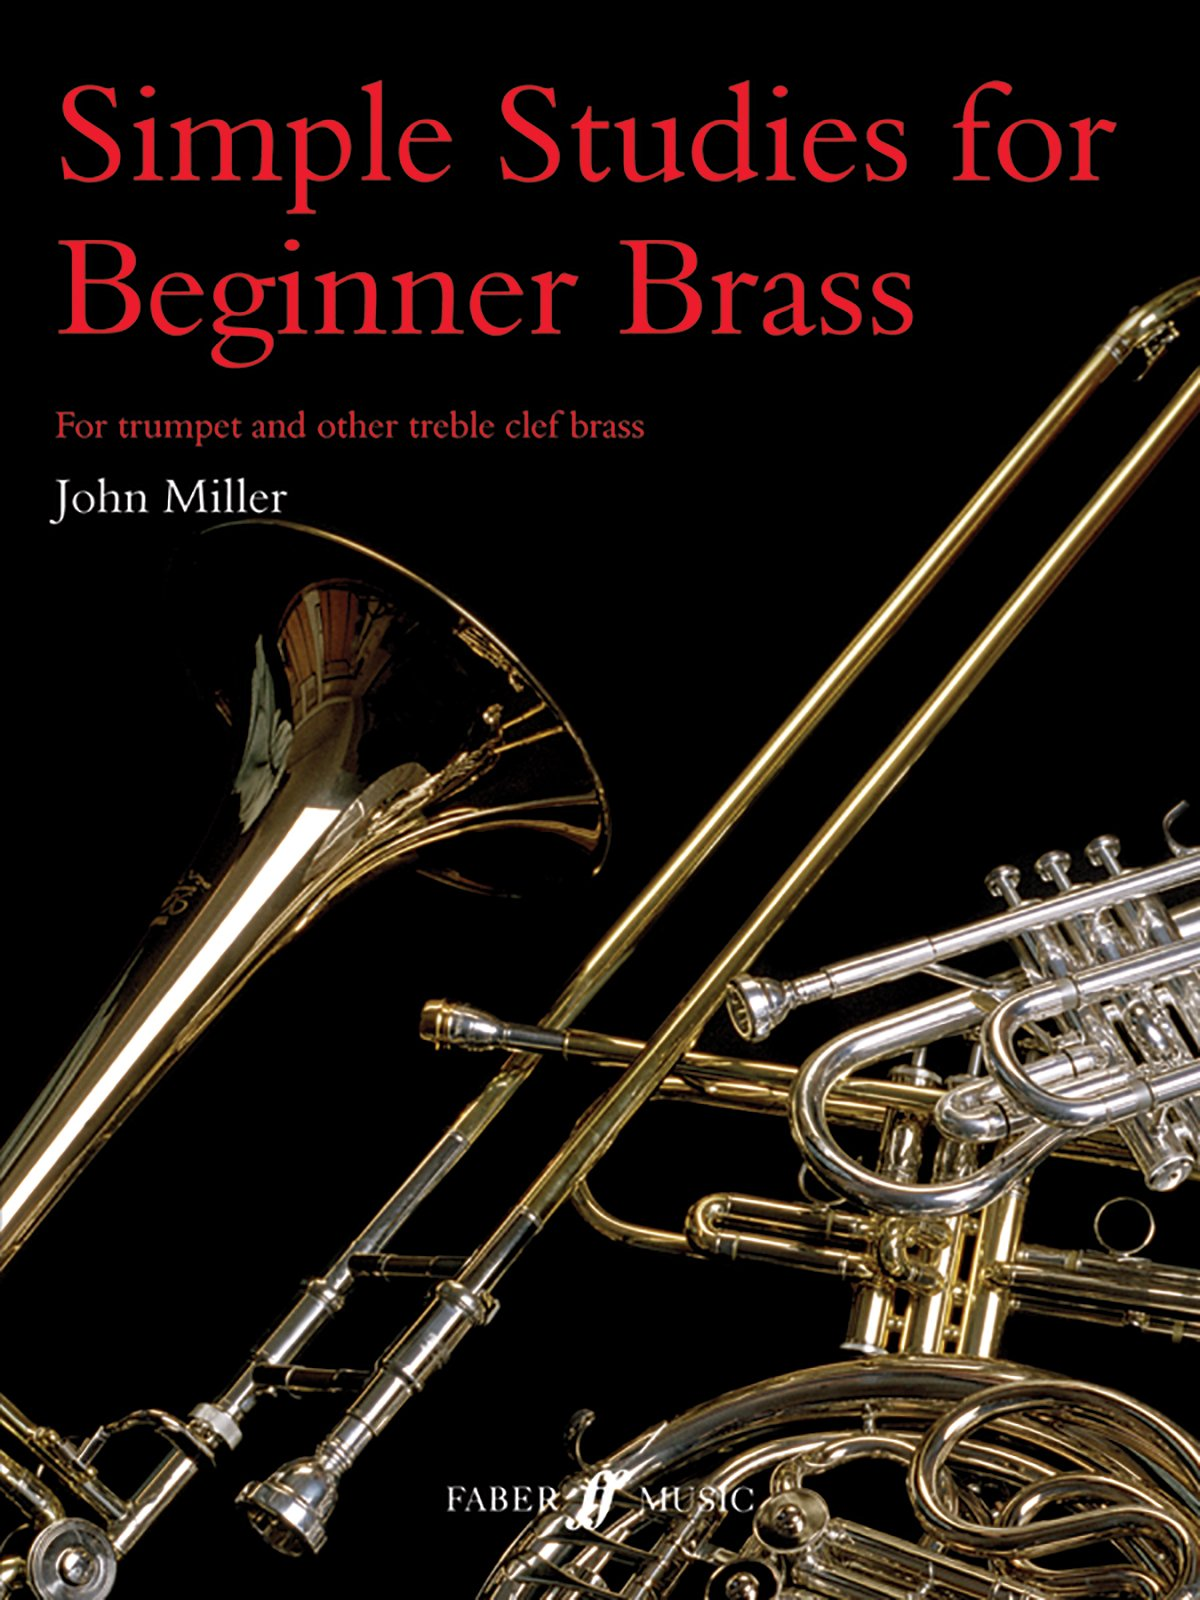 Simple Studies for Beginner Brass (Faber Edition) pdf